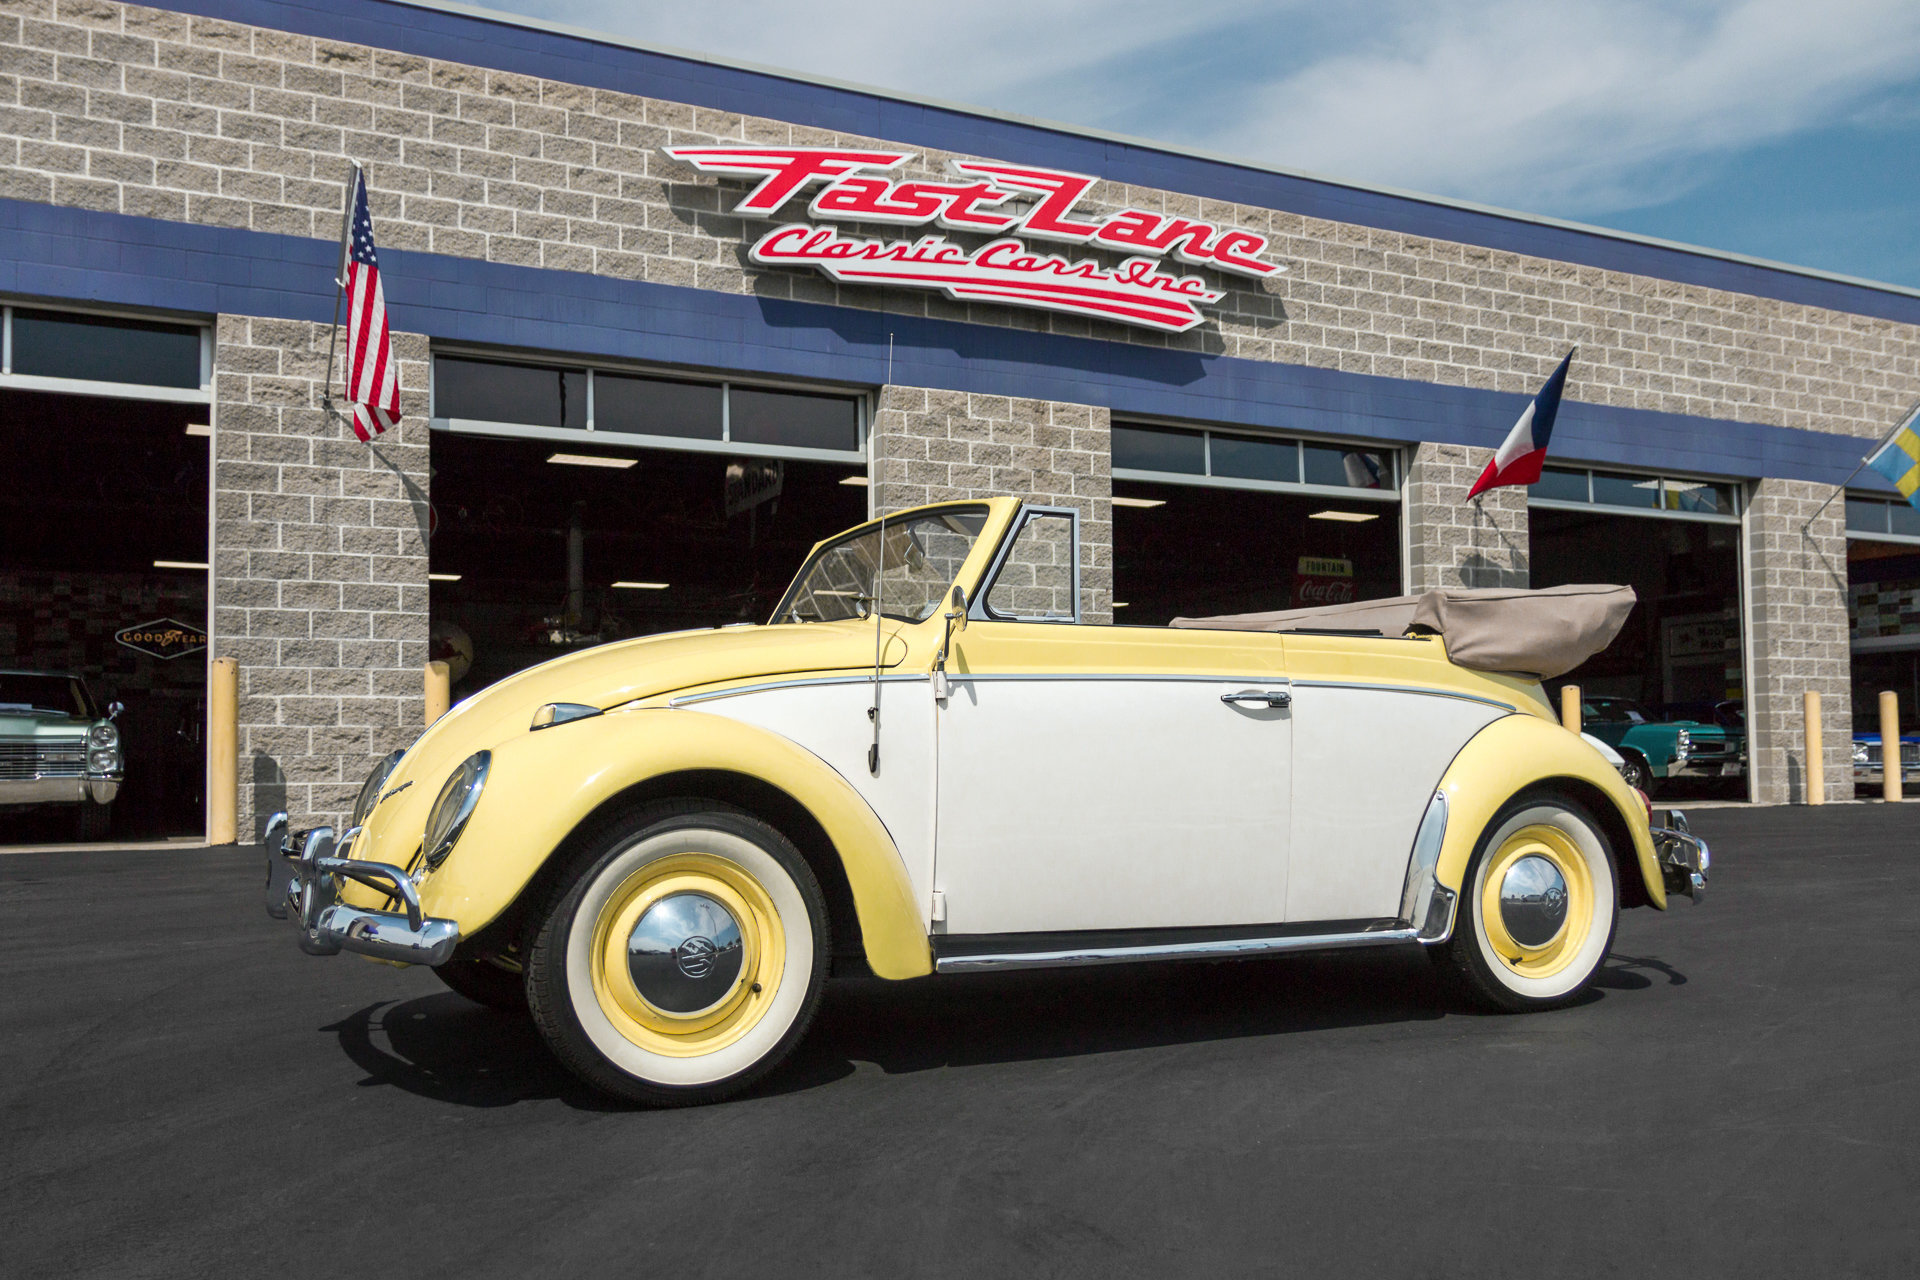 com baltimore volkswagen and in cars new for auto used sale img beetle md yellow